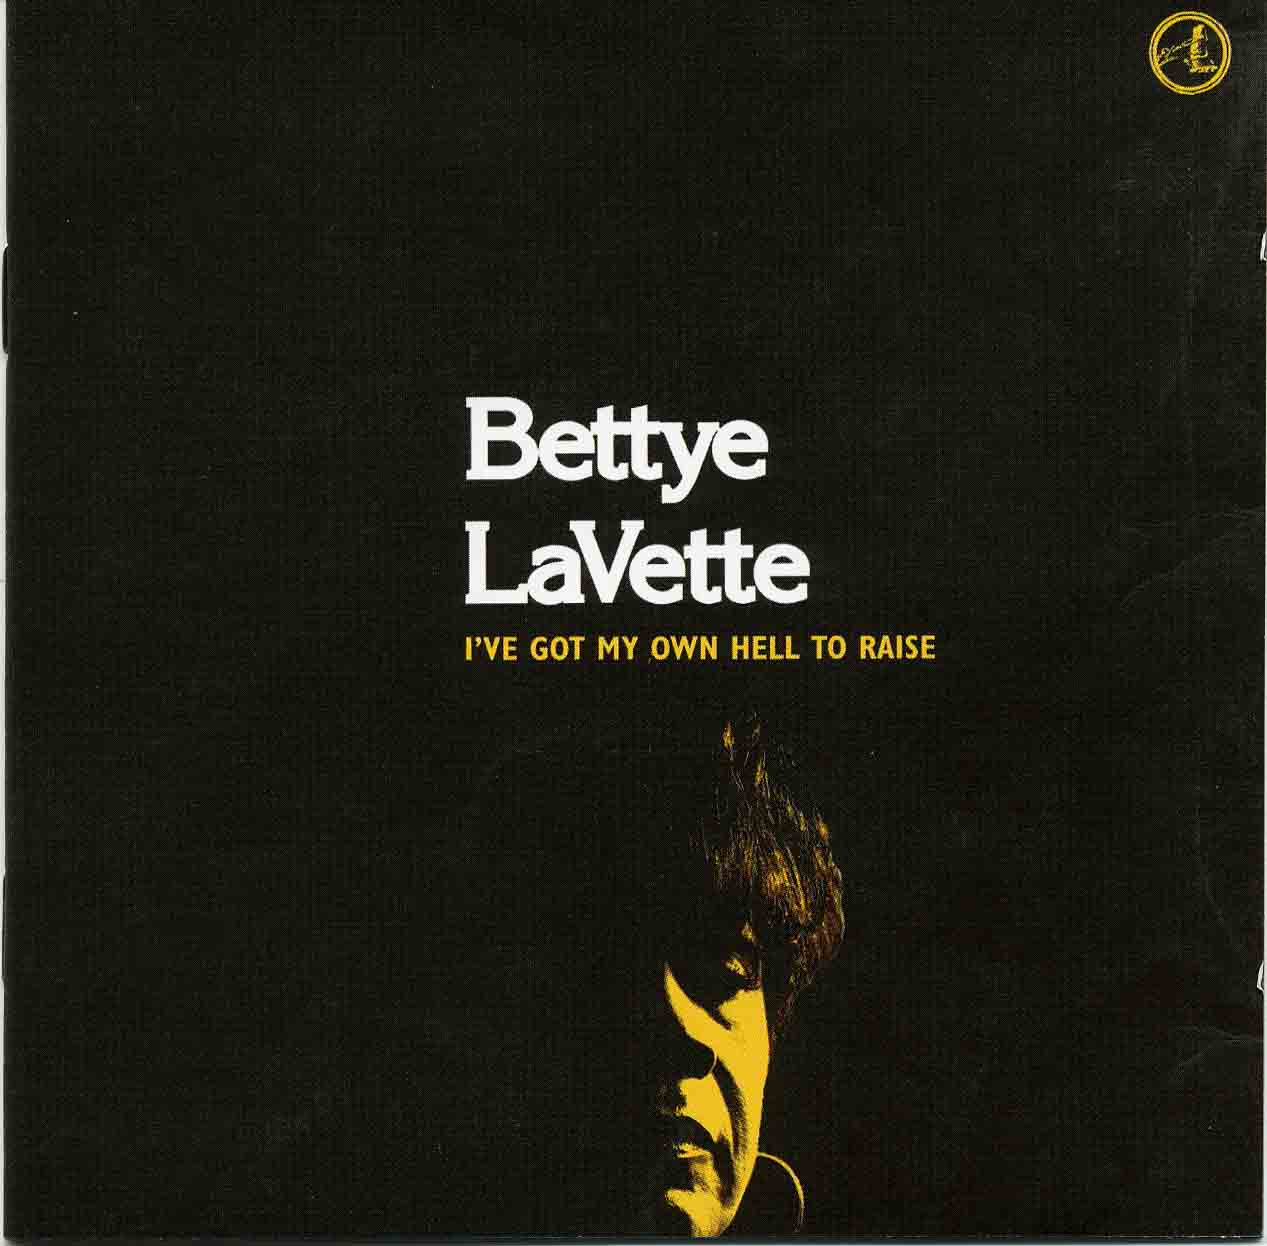 http://4.bp.blogspot.com/-mdnyq-873Ik/T2EHqnPLqOI/AAAAAAAACDE/yIgs423IFcA/s1600/Betty+Lavette+-+I\'ve+Got+My+Own+Hell+To+Raise+cover.jpg